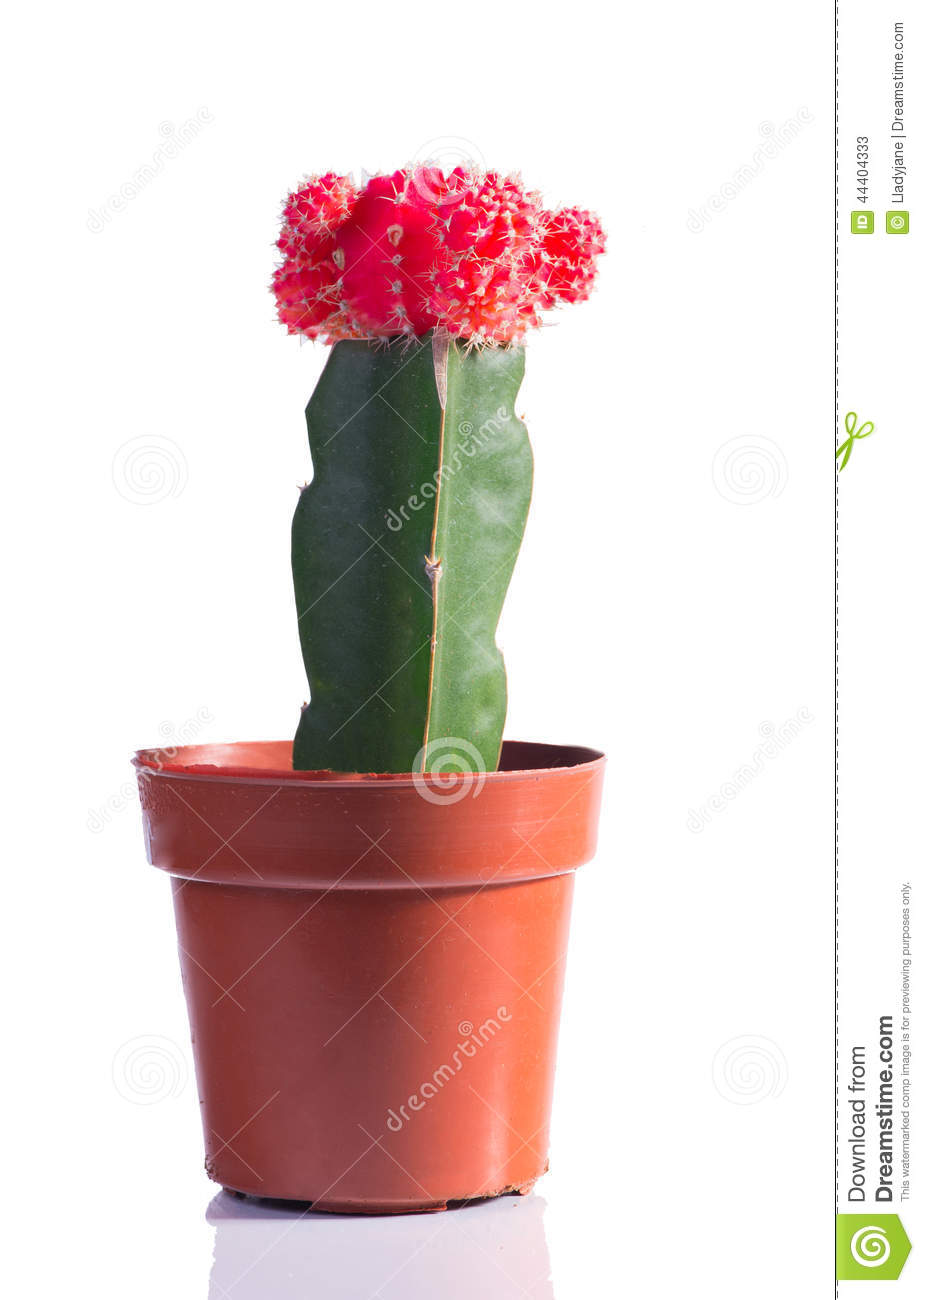 cactus avec une fleur dans un pot image stock image 44404333. Black Bedroom Furniture Sets. Home Design Ideas